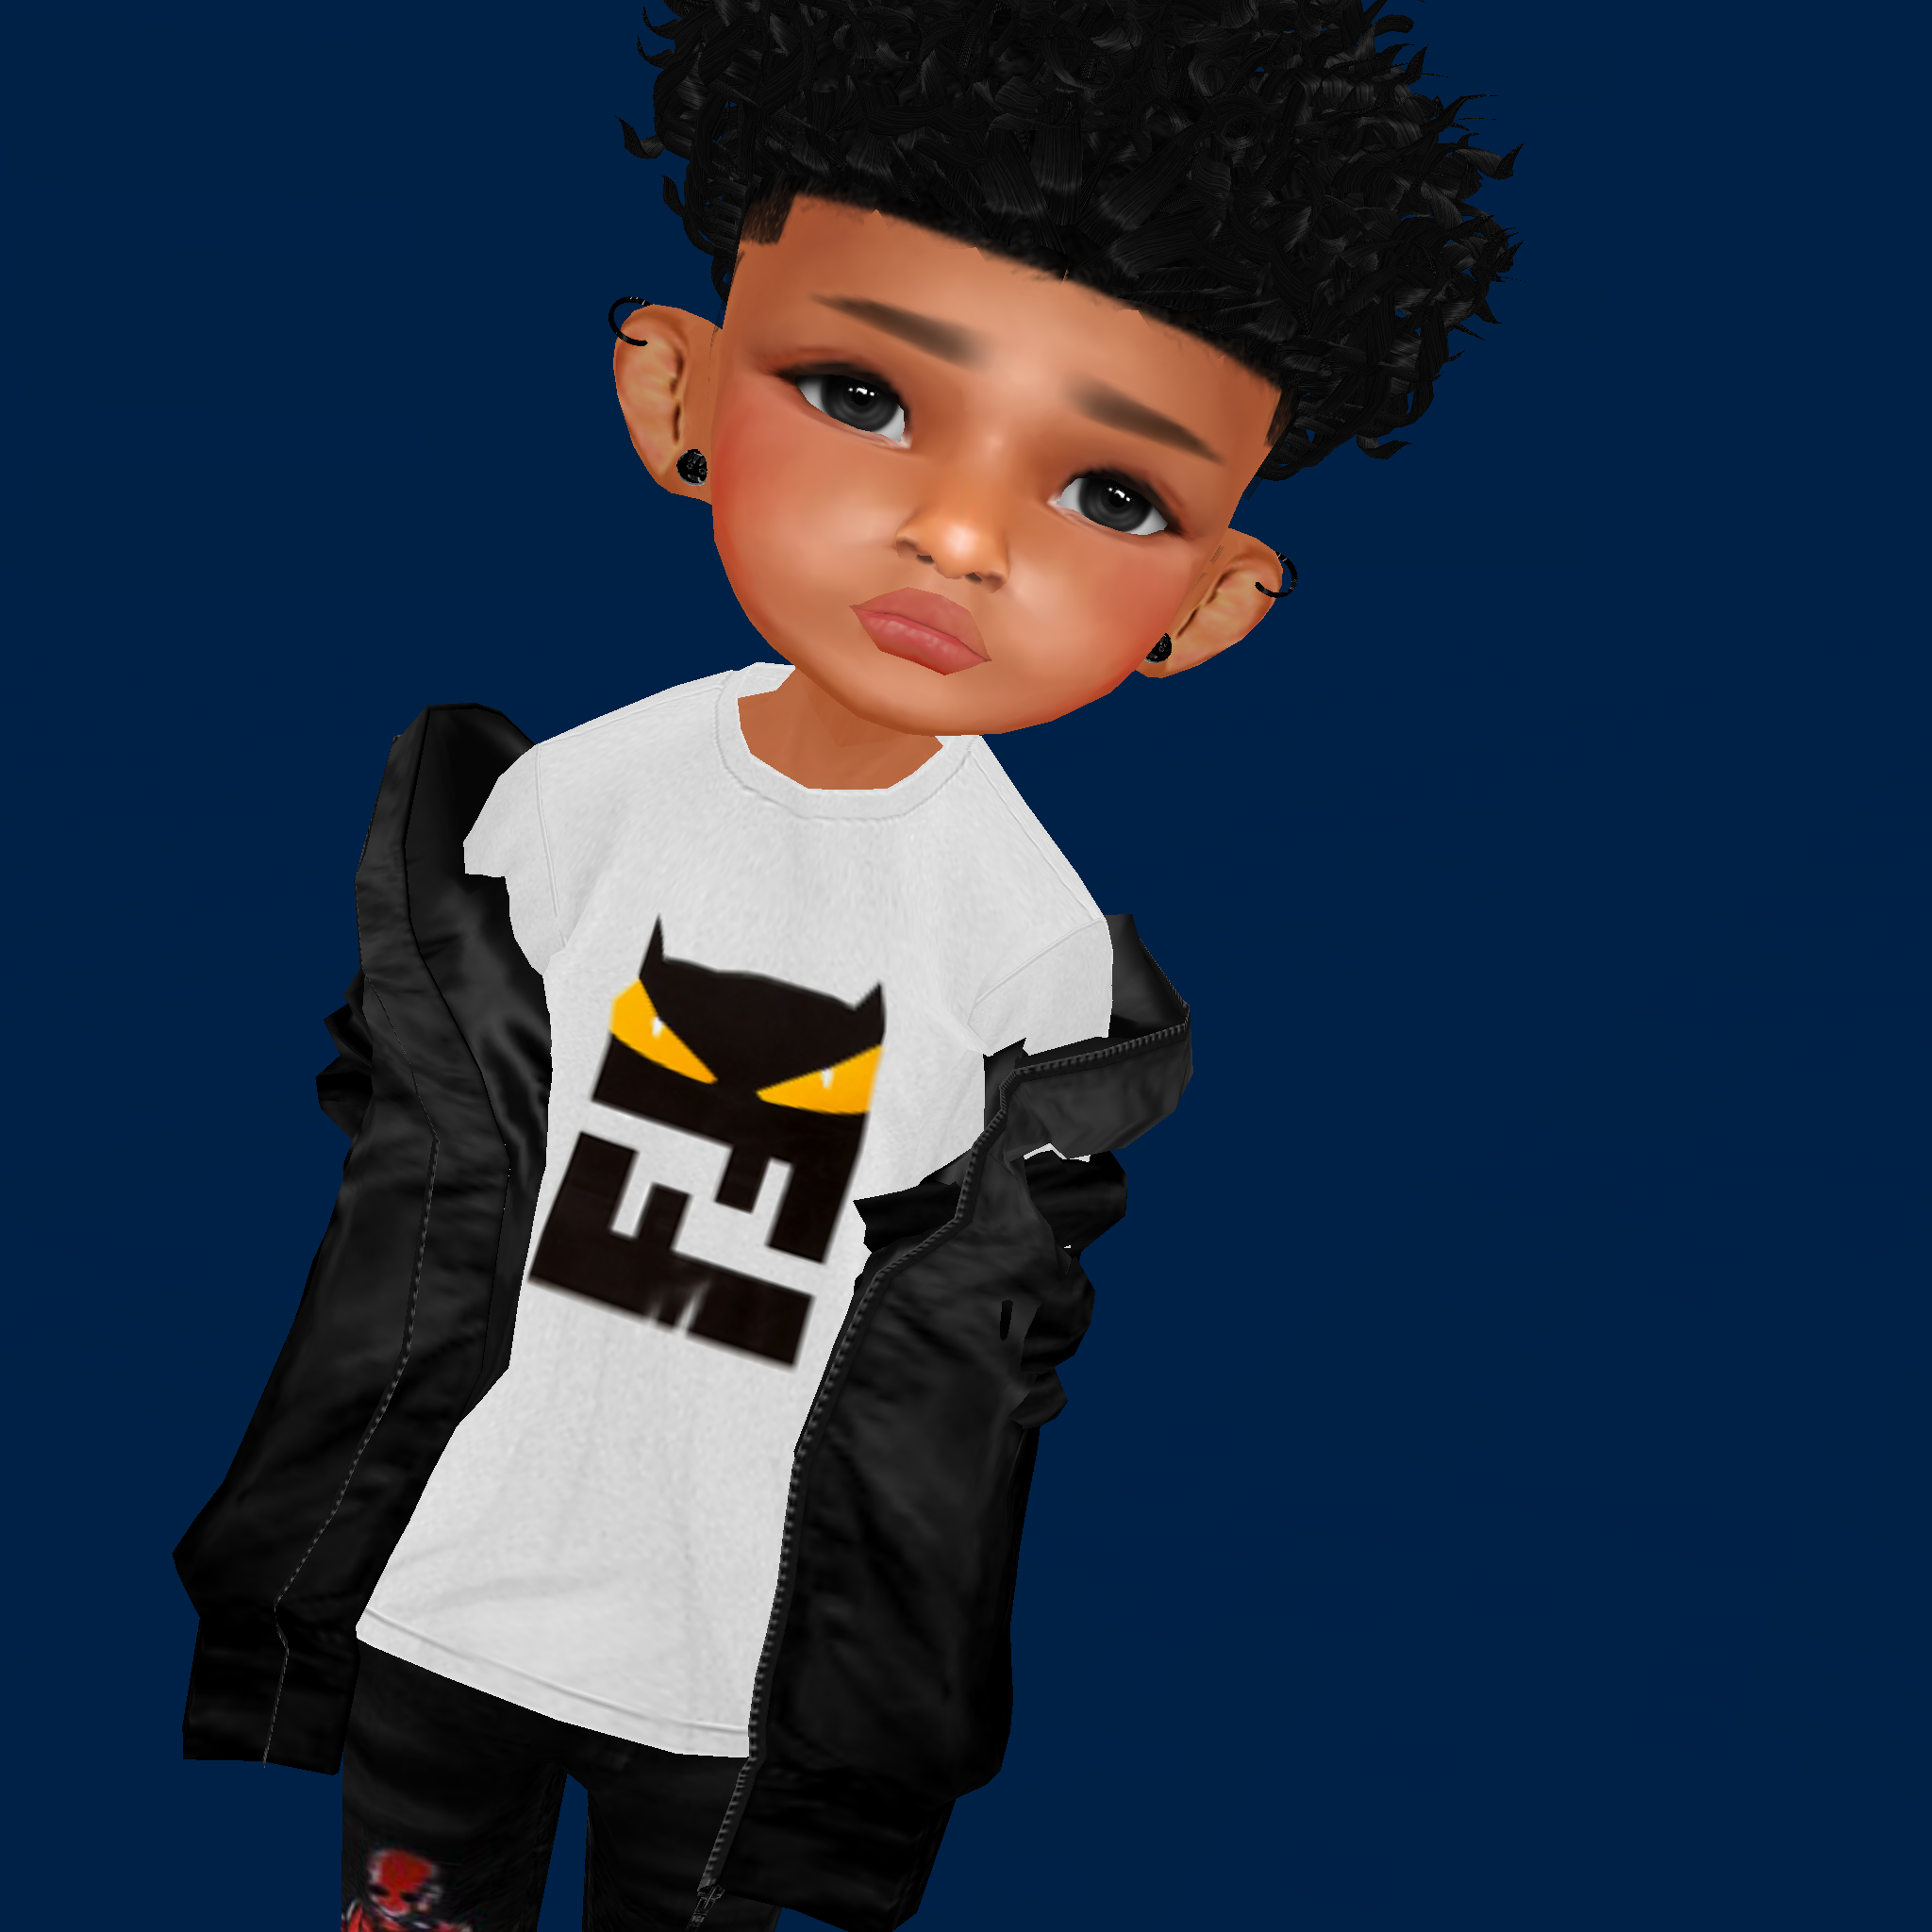 e9207af75860 kid avi - Your Avatar - Second Life Community